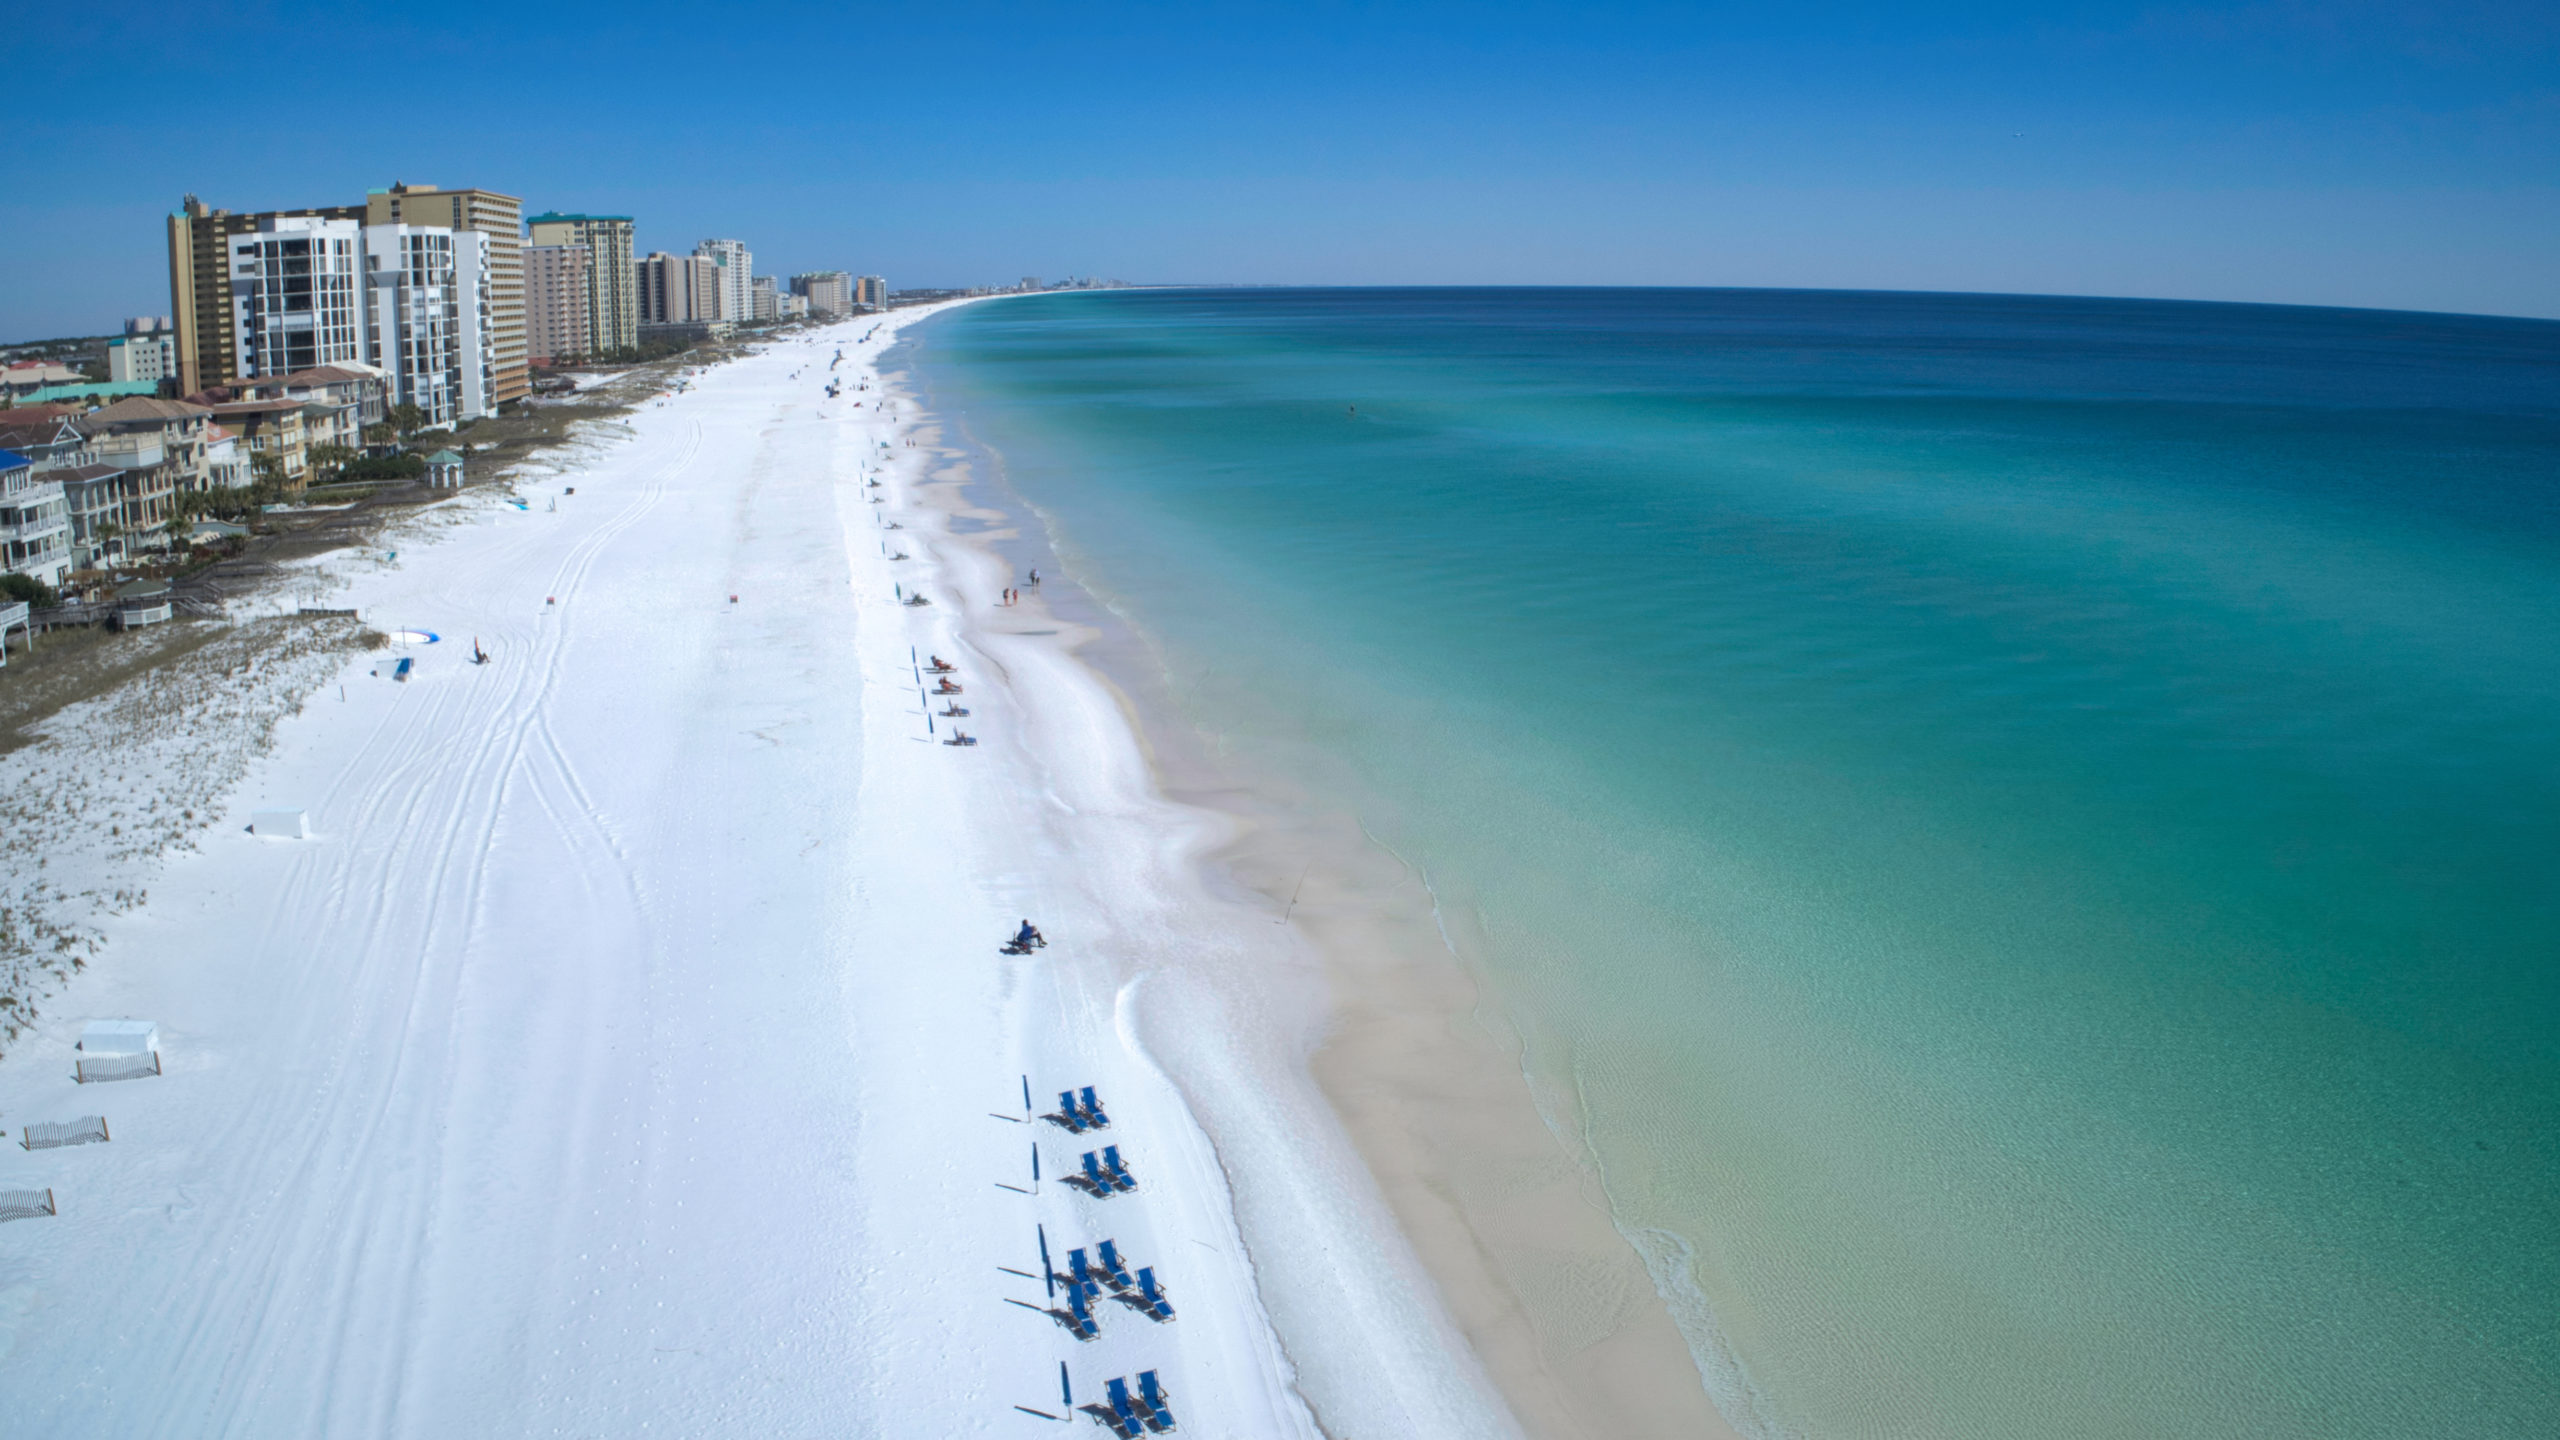 Destin, Florida - Water Activities in Destin